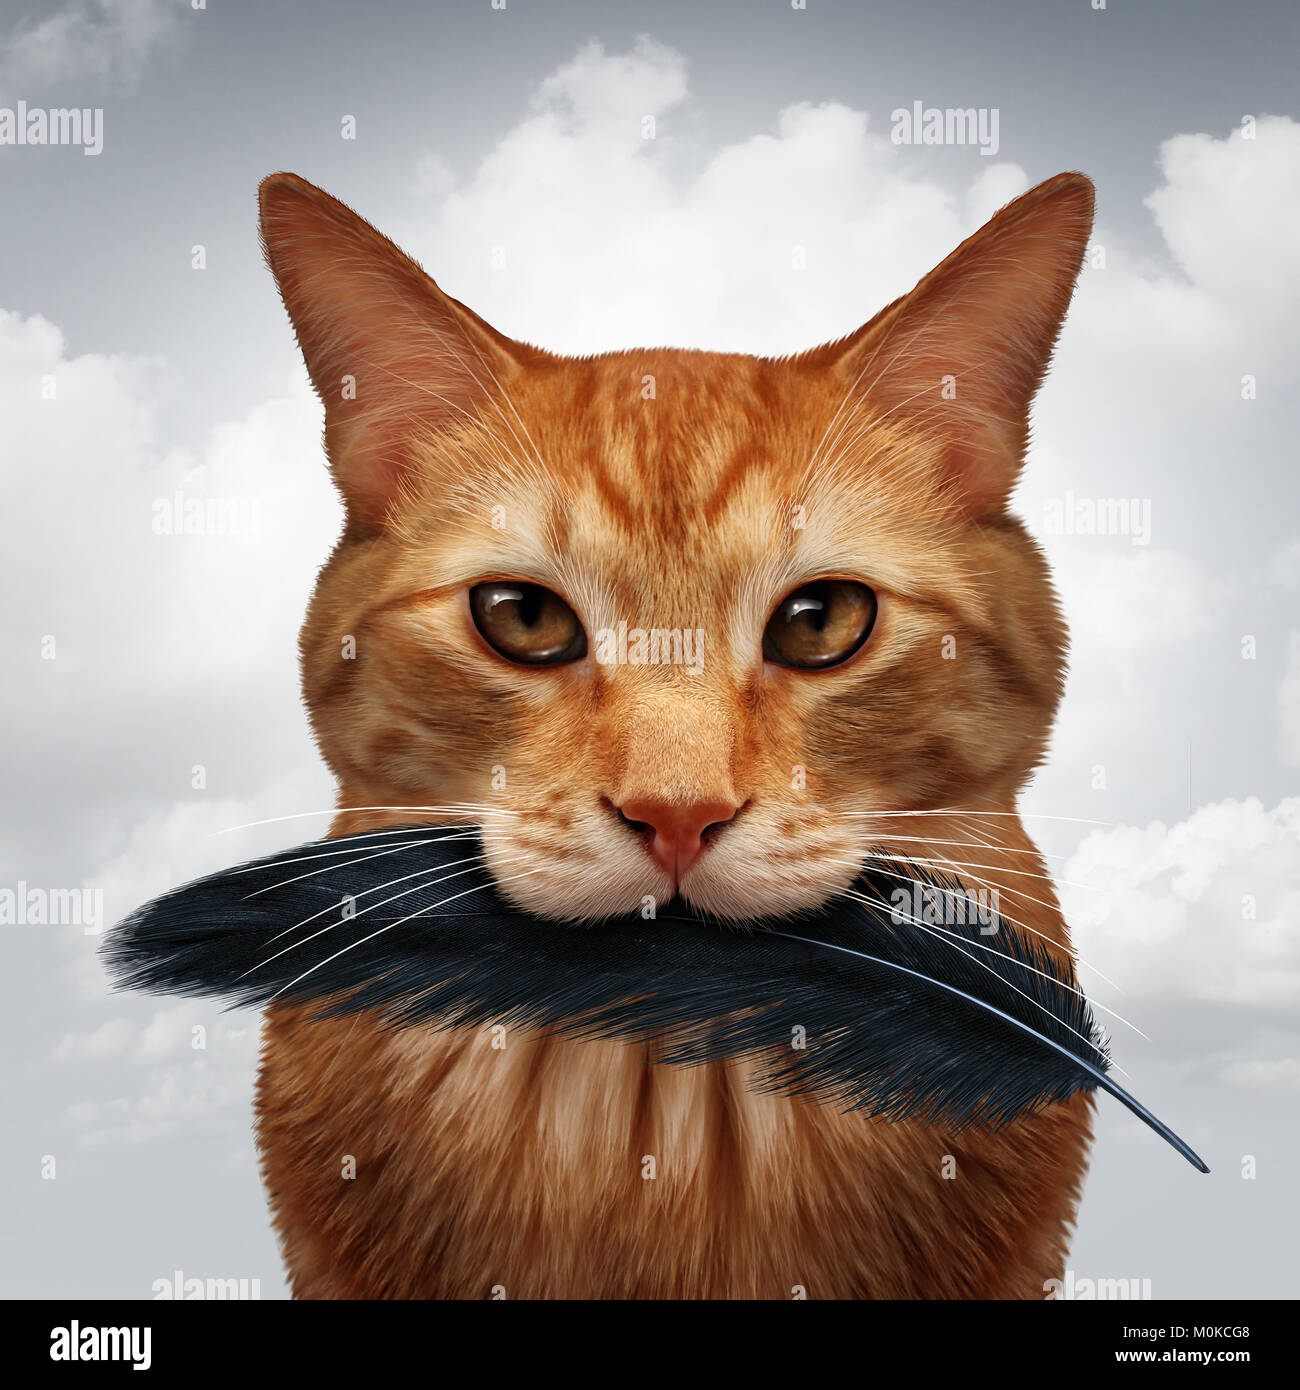 Cat behavior and killer instinct concept as a domestic feline with a black bird feather in its mouth as a metaphor - Stock Image